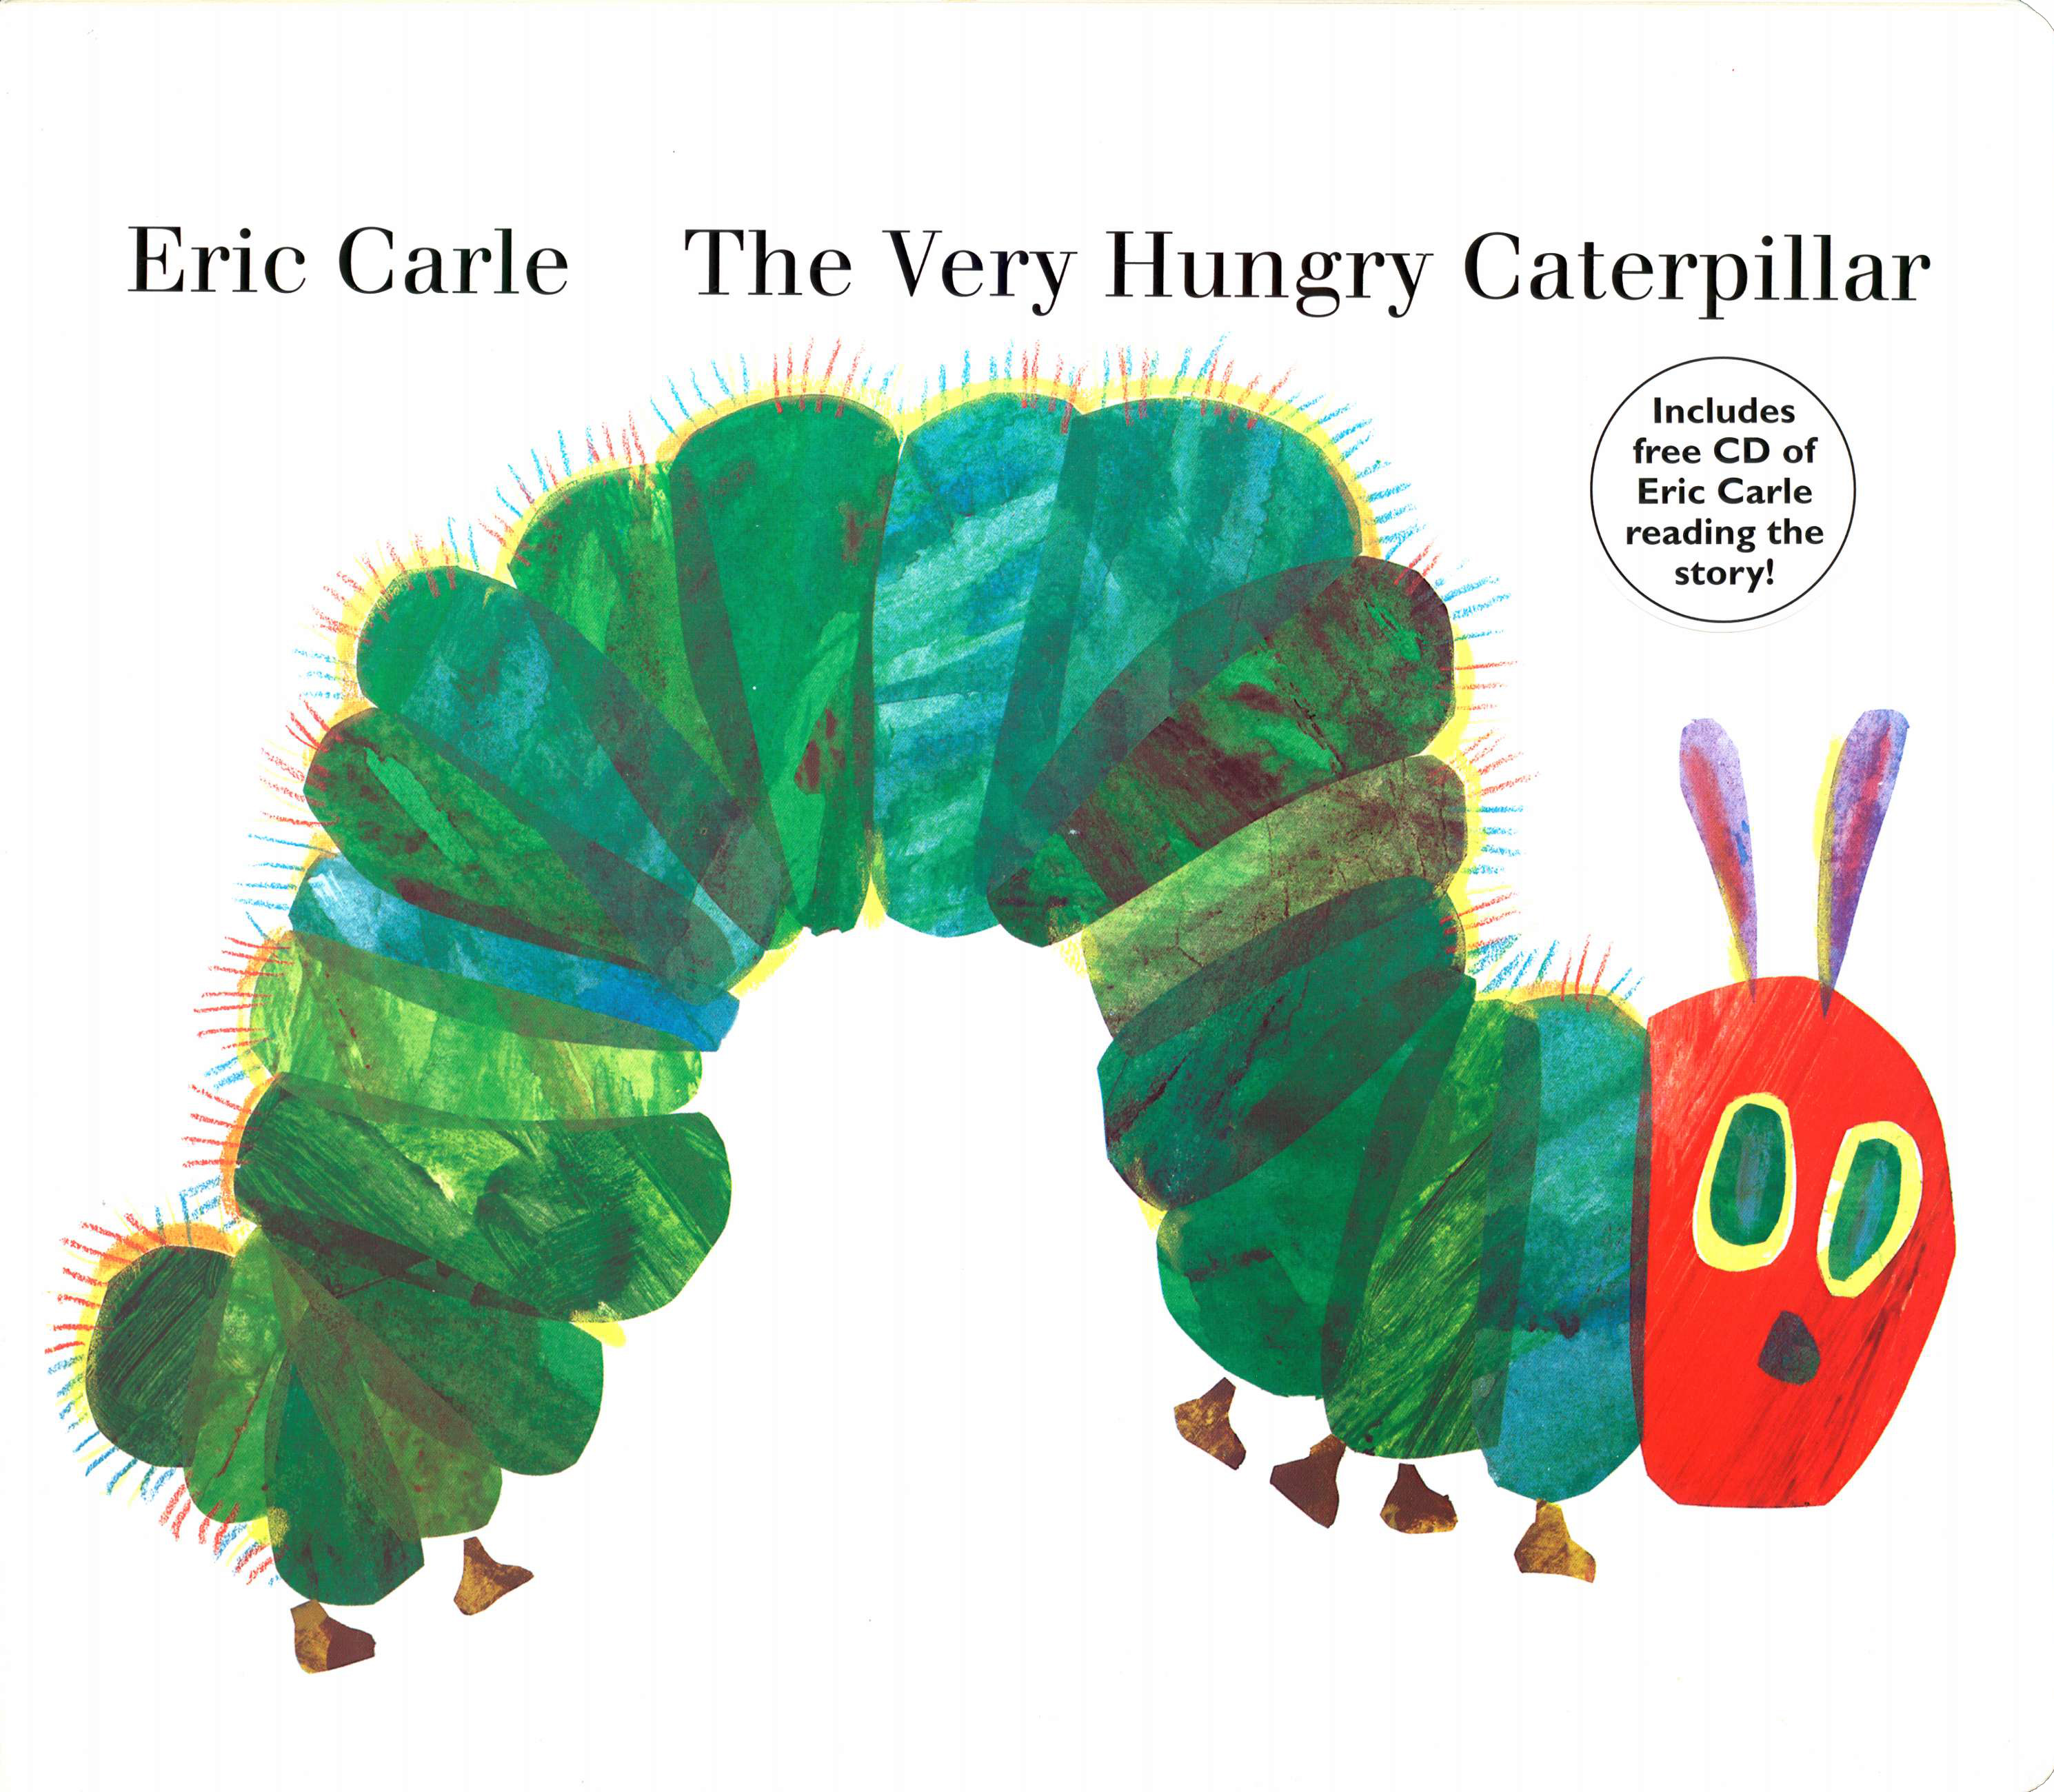 The Very Hungry Caterpillar 45th Anniversary Giveaway